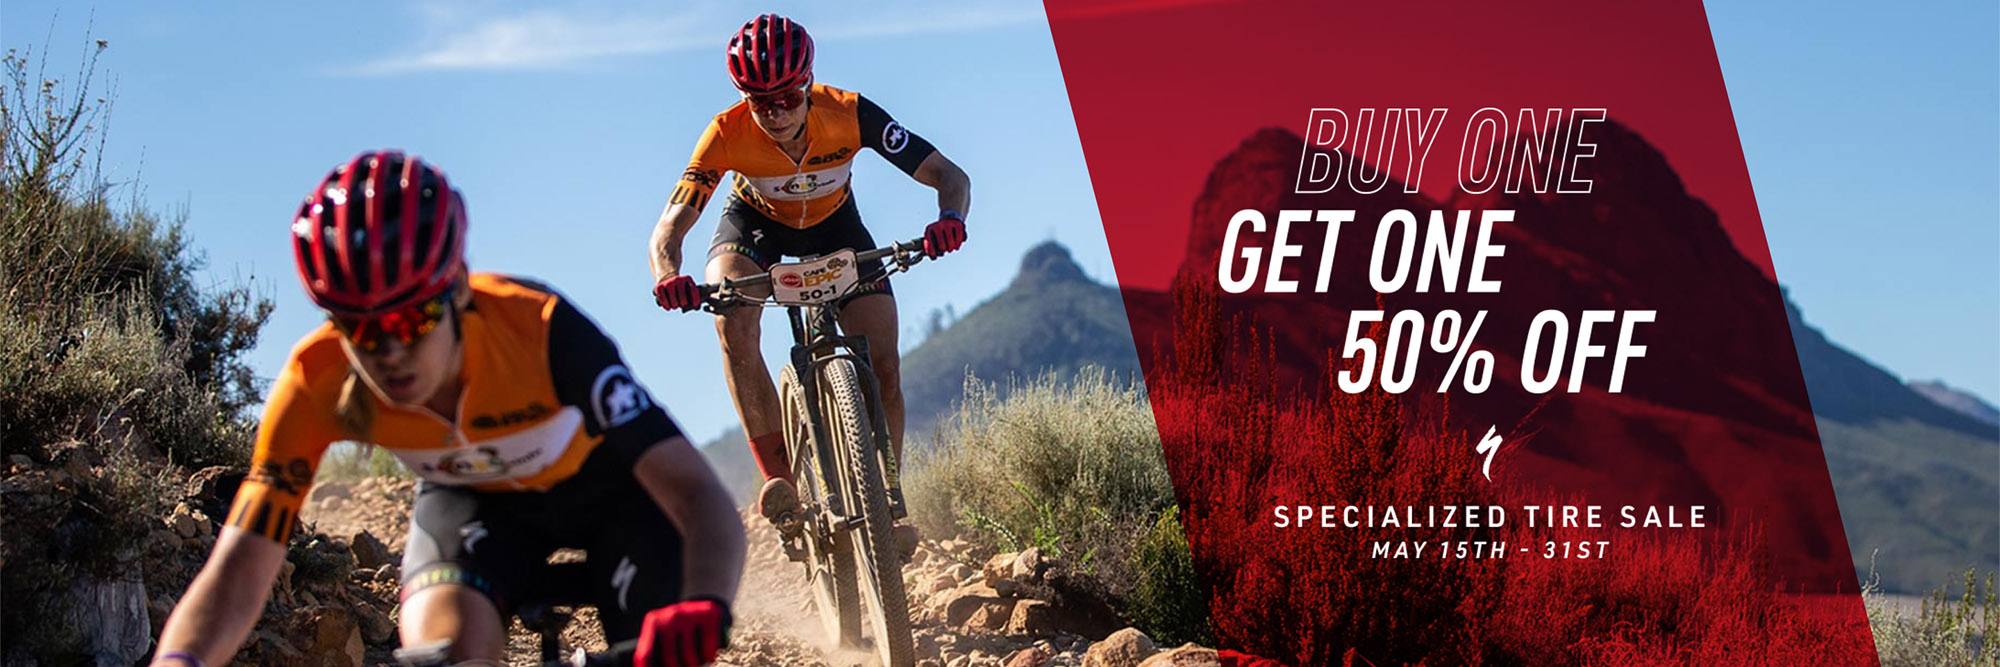 Specialized Tire Sale 2019